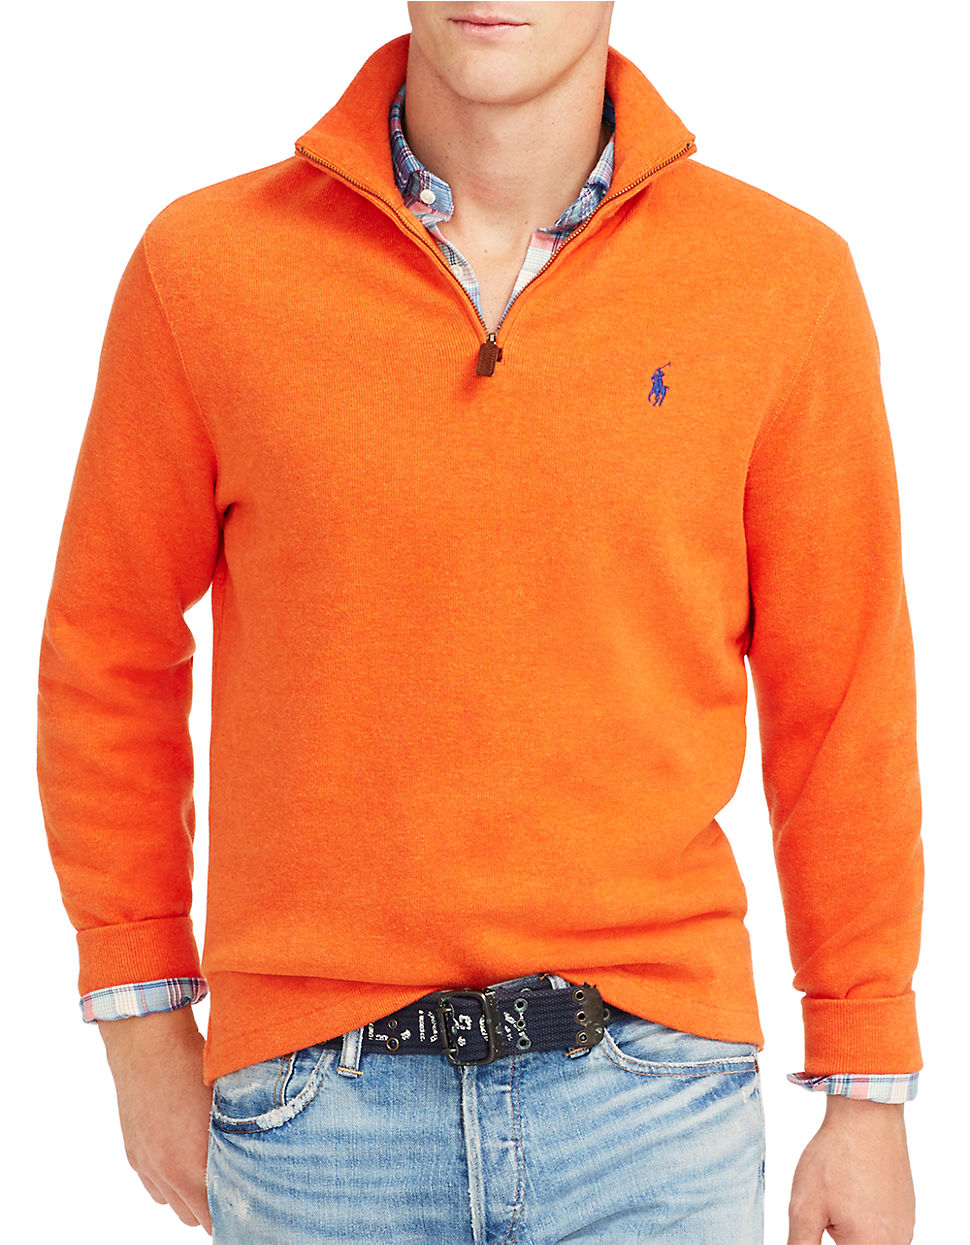 polo ralph lauren orange french rib half zip pullover for men lyst. Black Bedroom Furniture Sets. Home Design Ideas